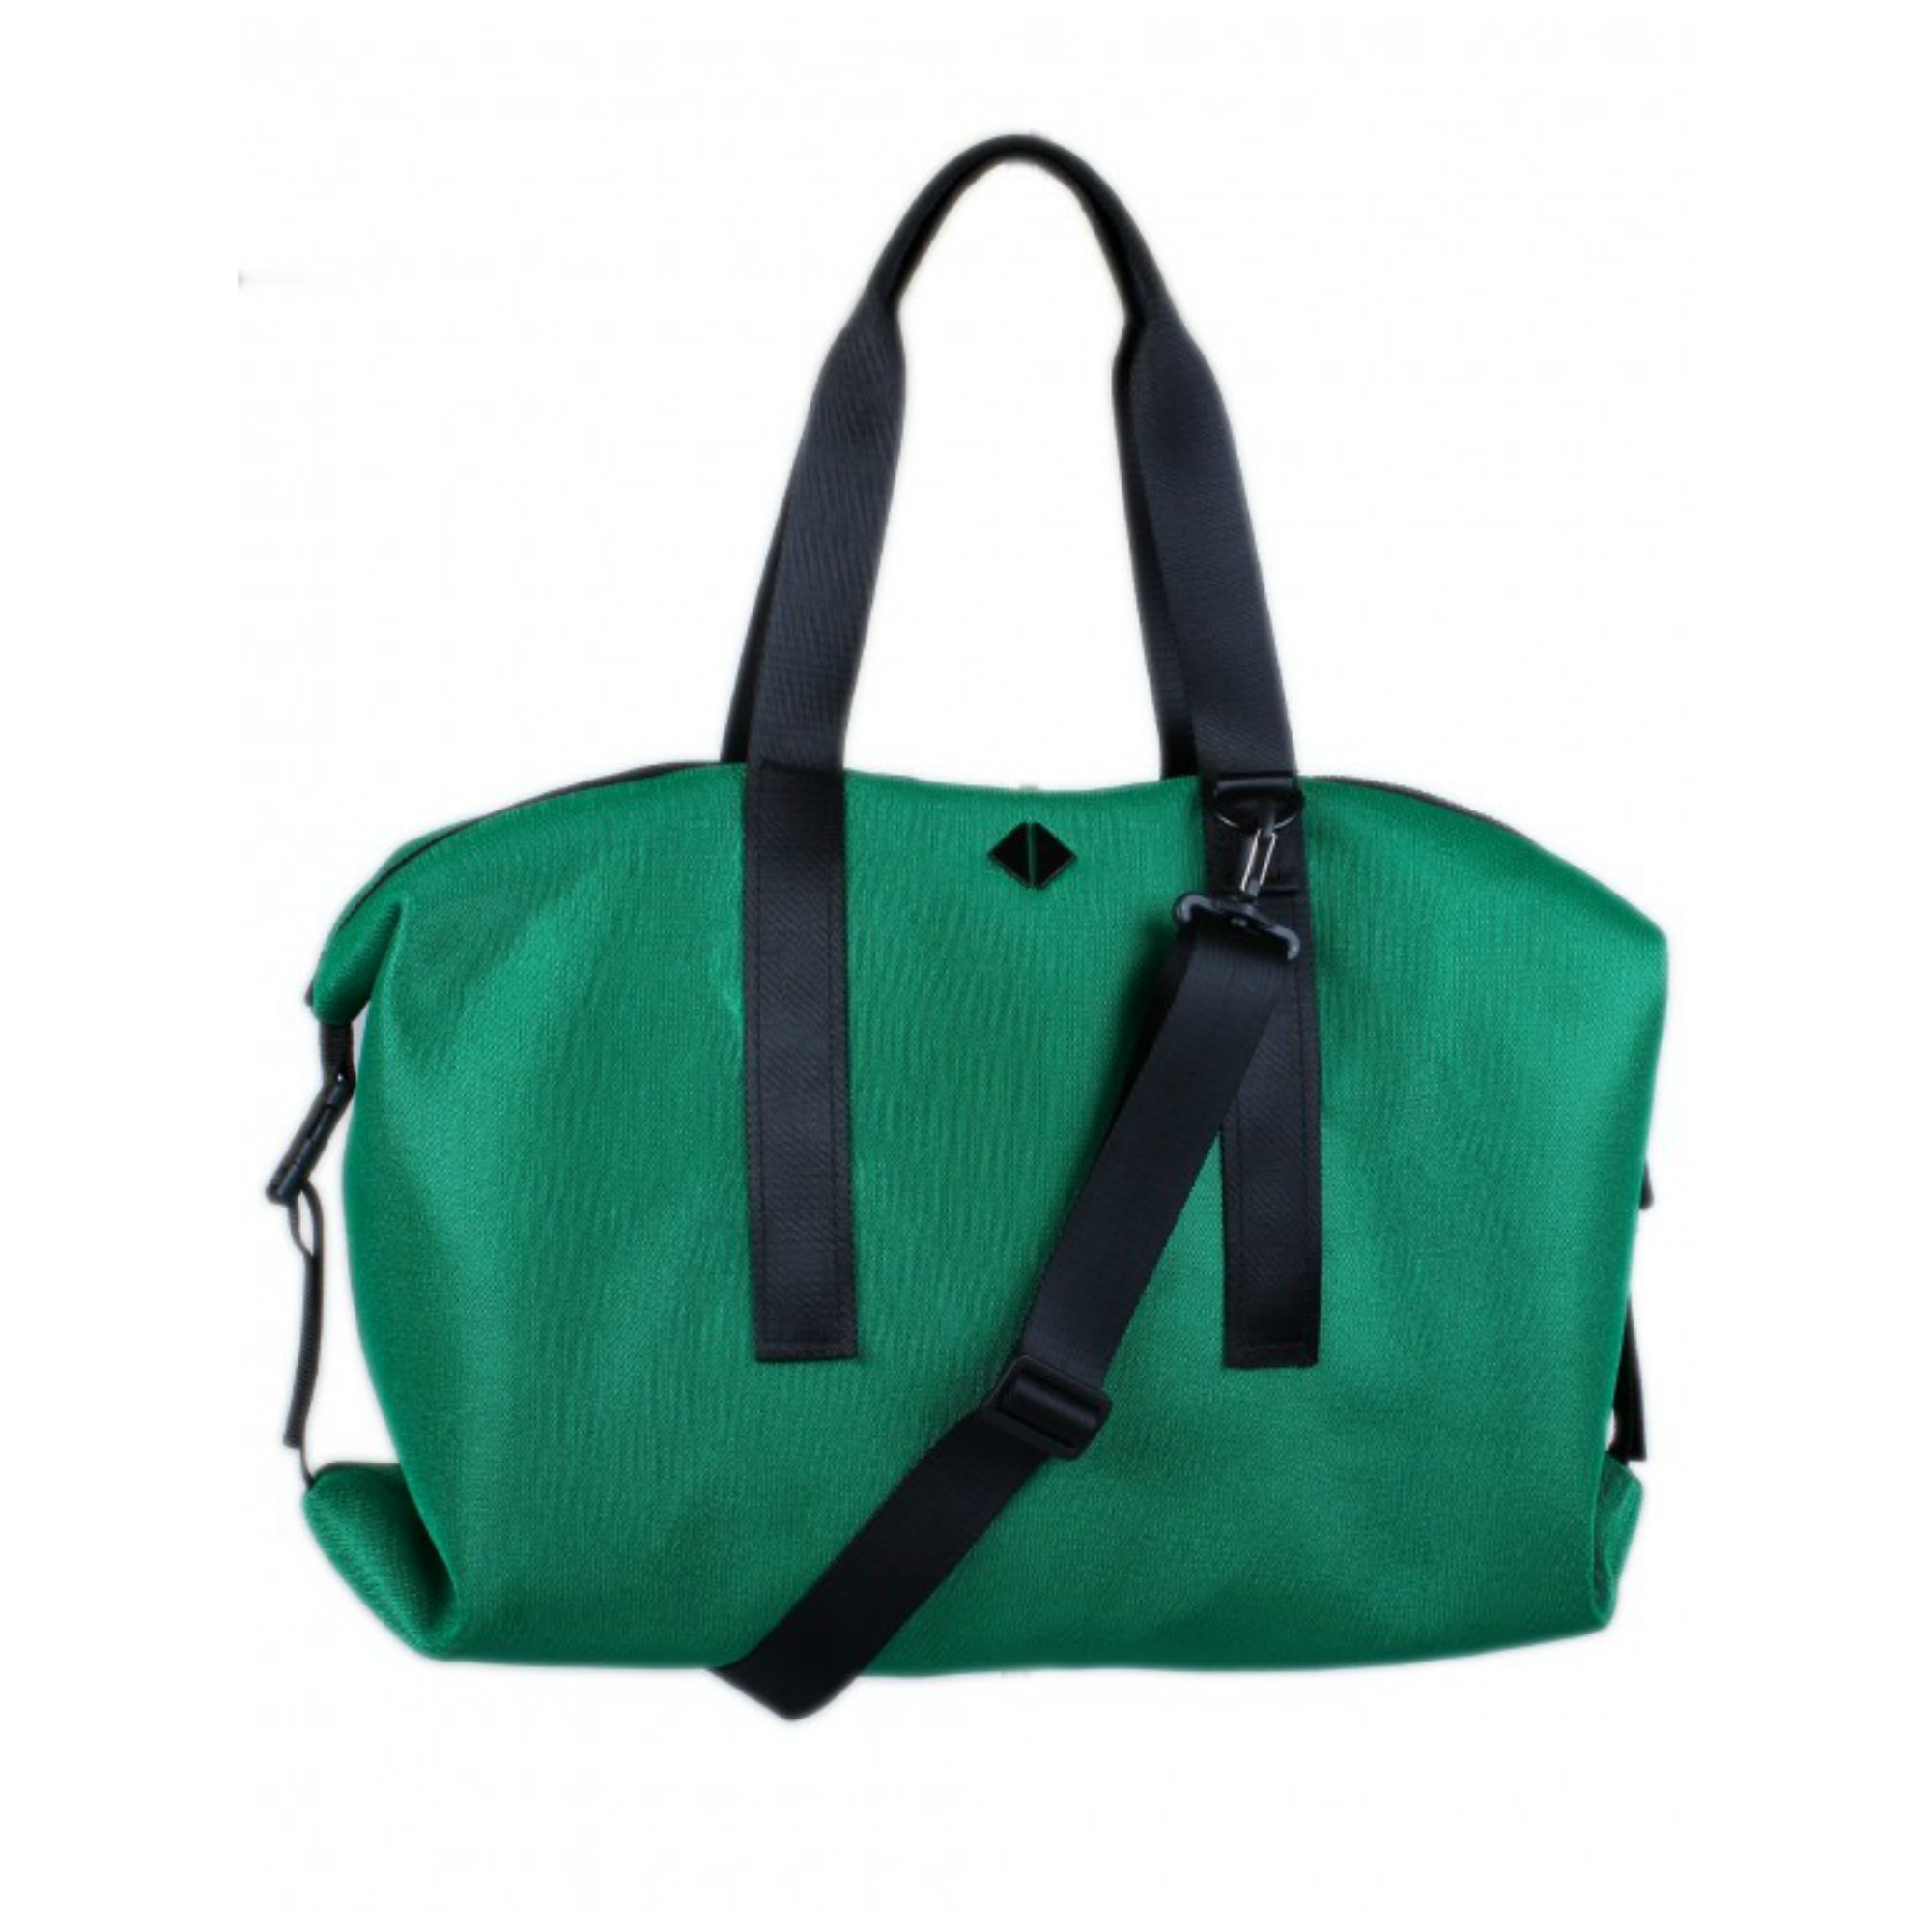 twinsaction sport bag yesil